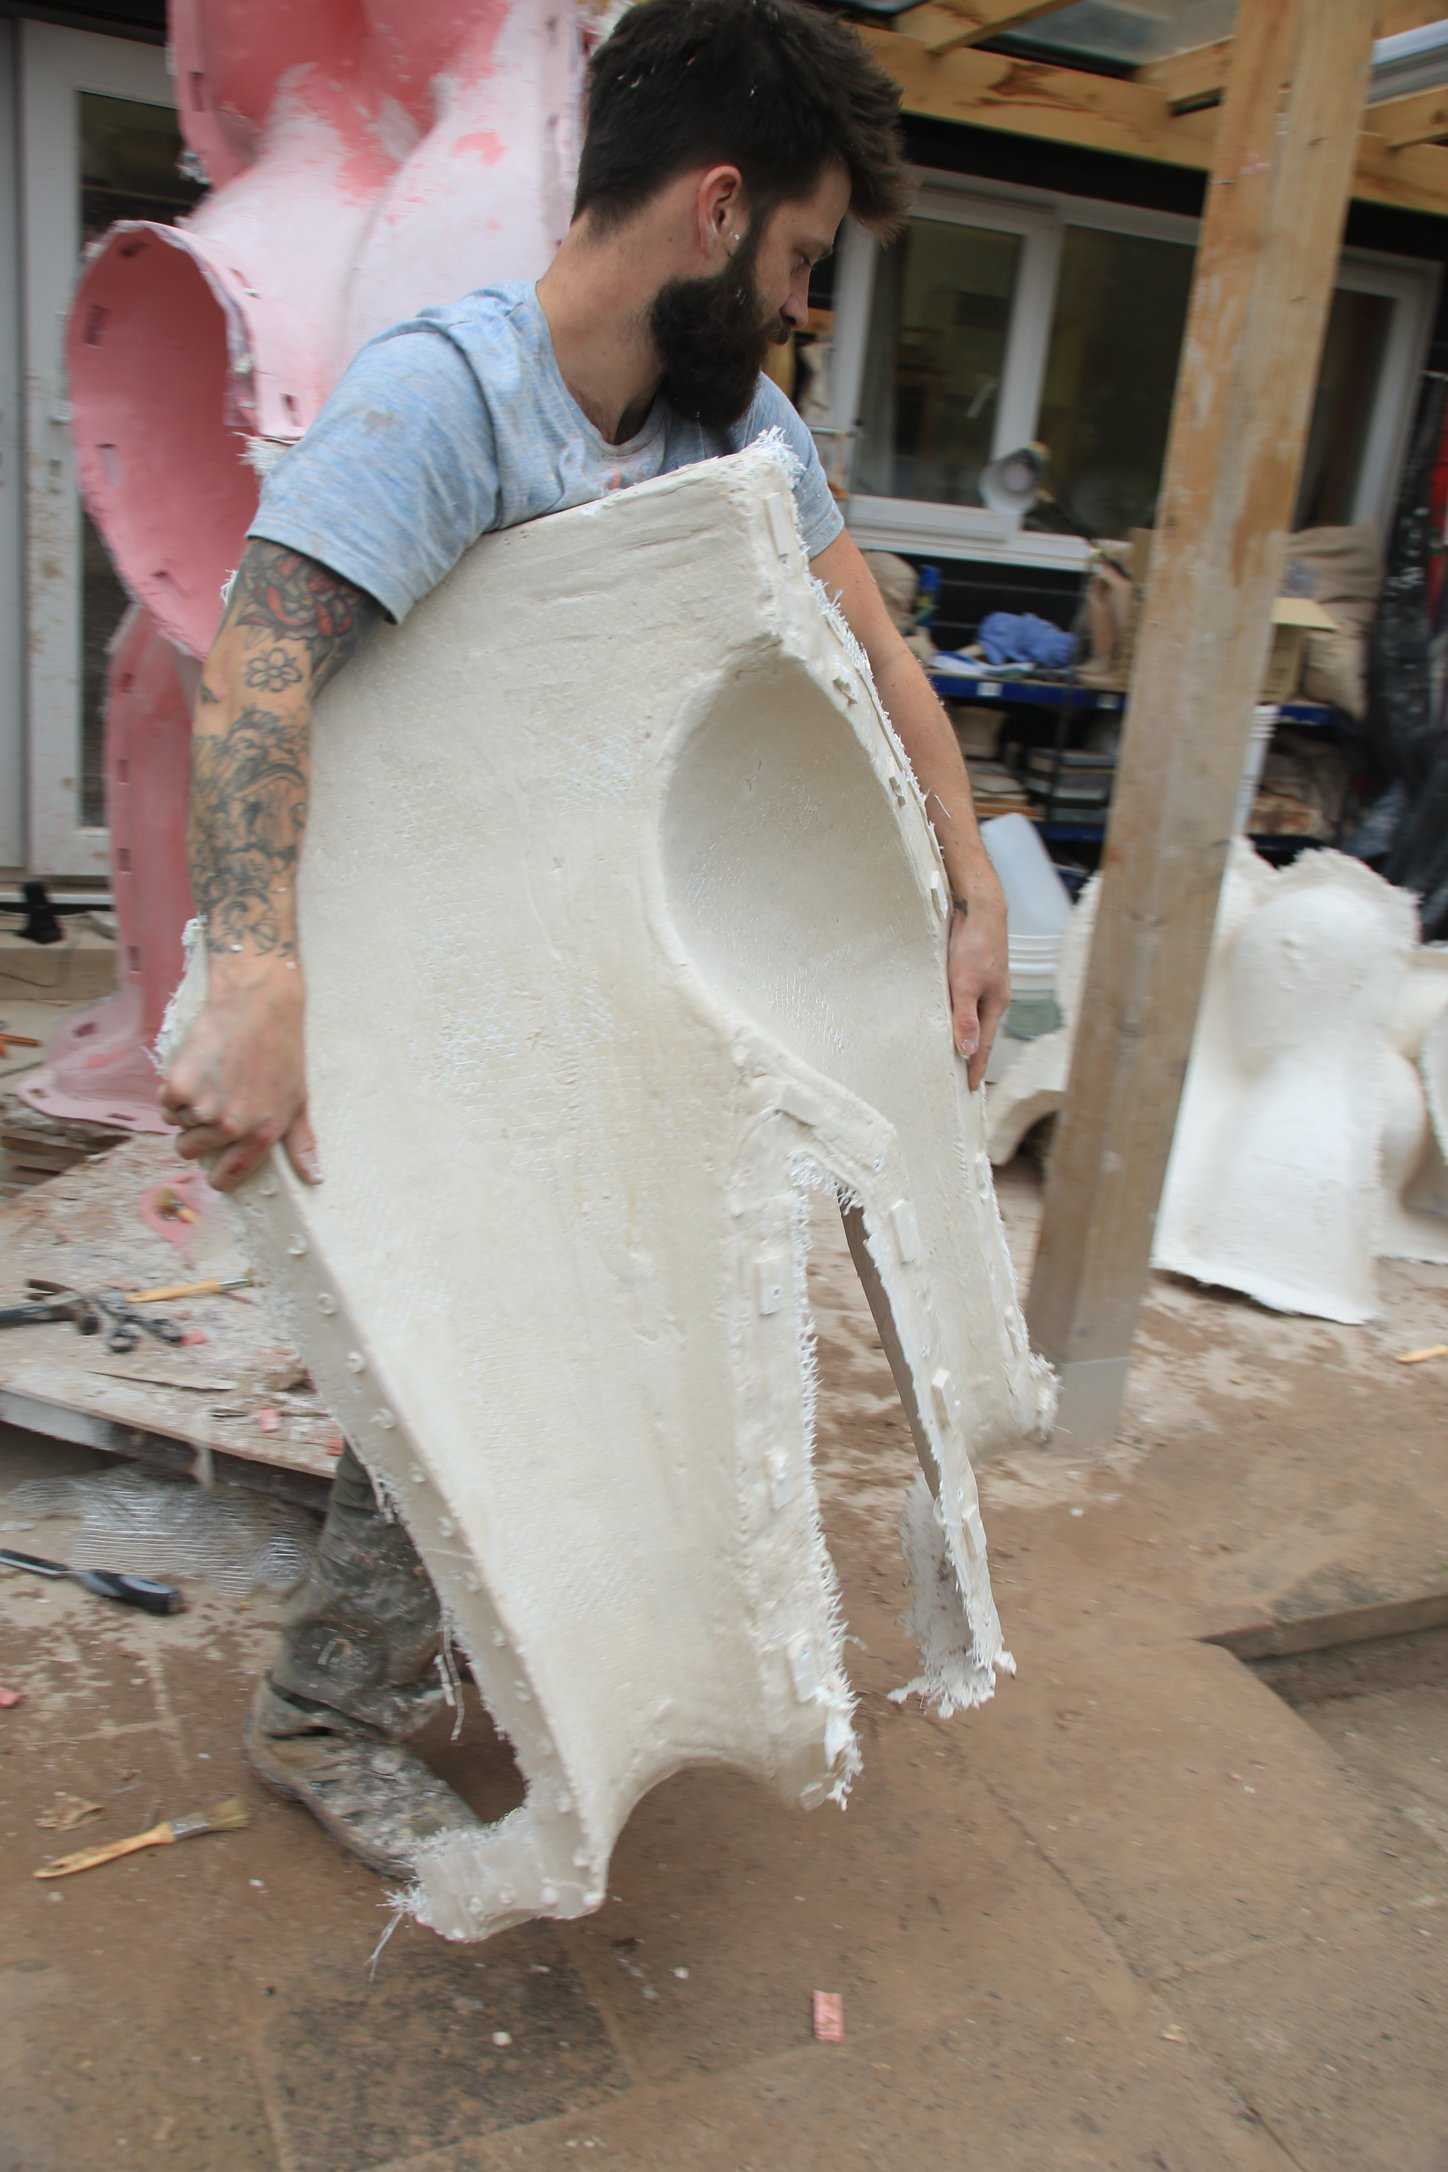 4. De- Moulding: taking off the hard layer